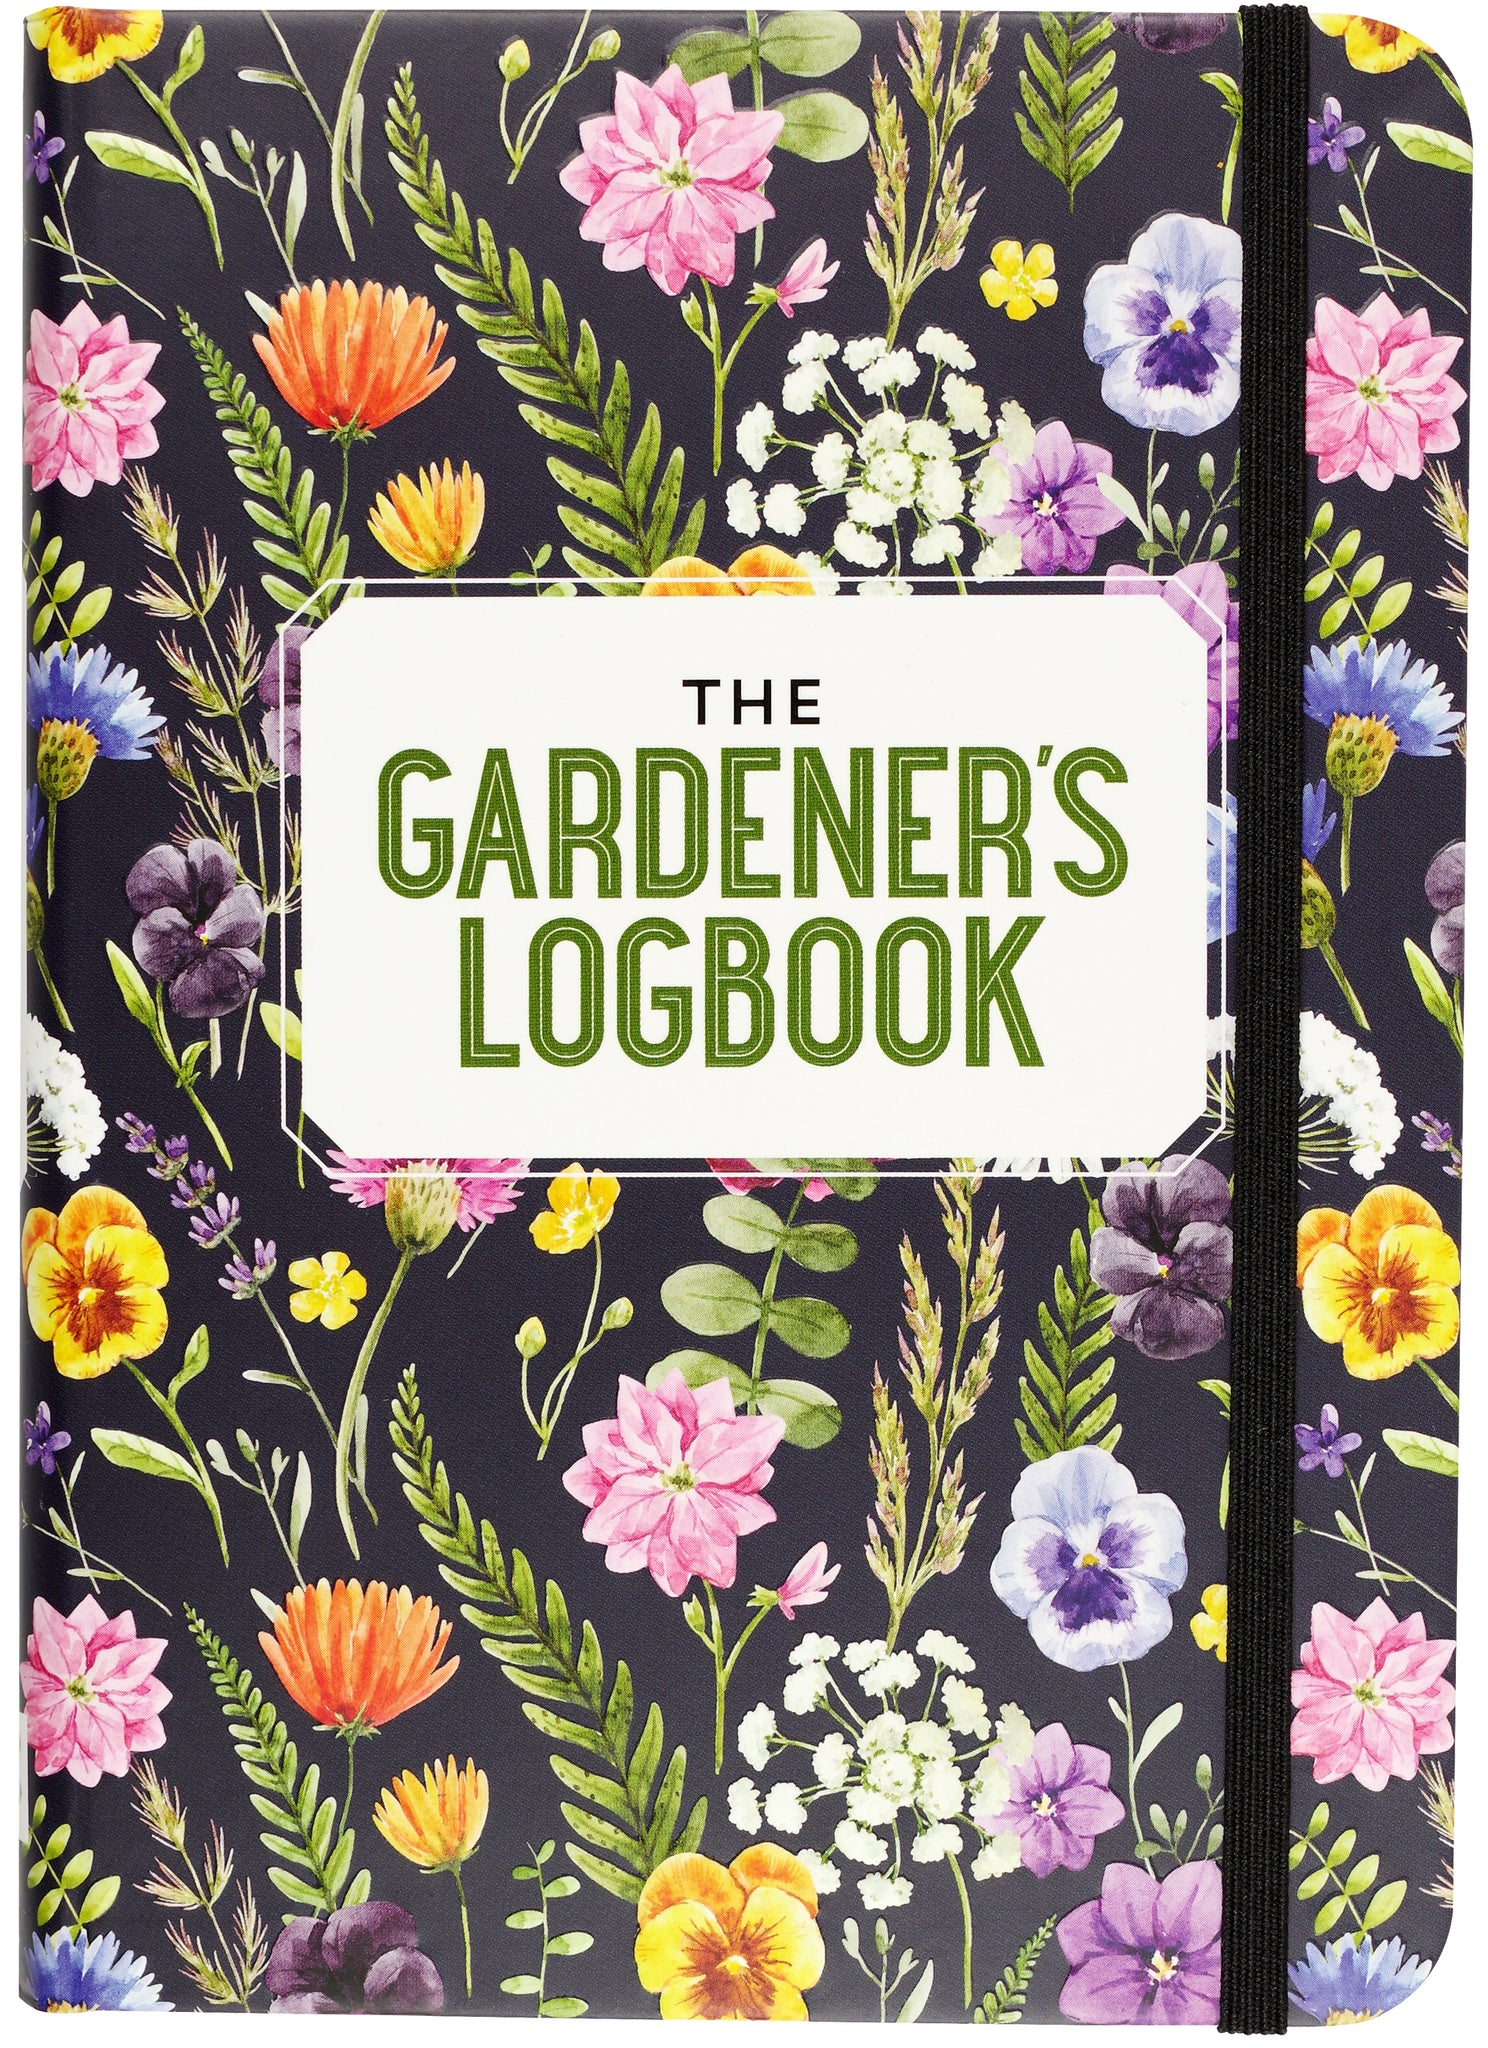 The Gardener's Logbook